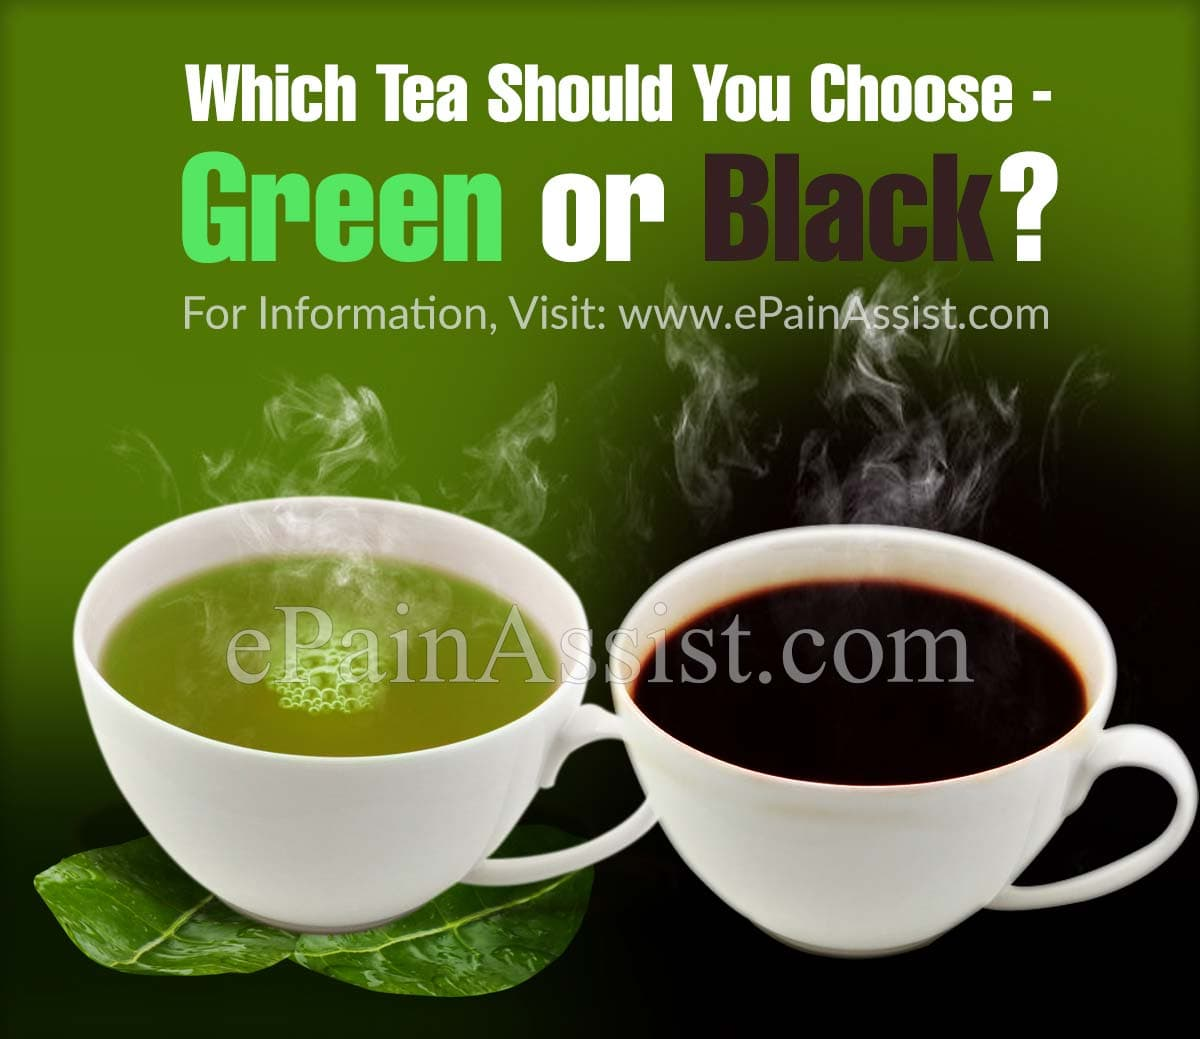 So Which Tea Should You Choose - Green or Black?